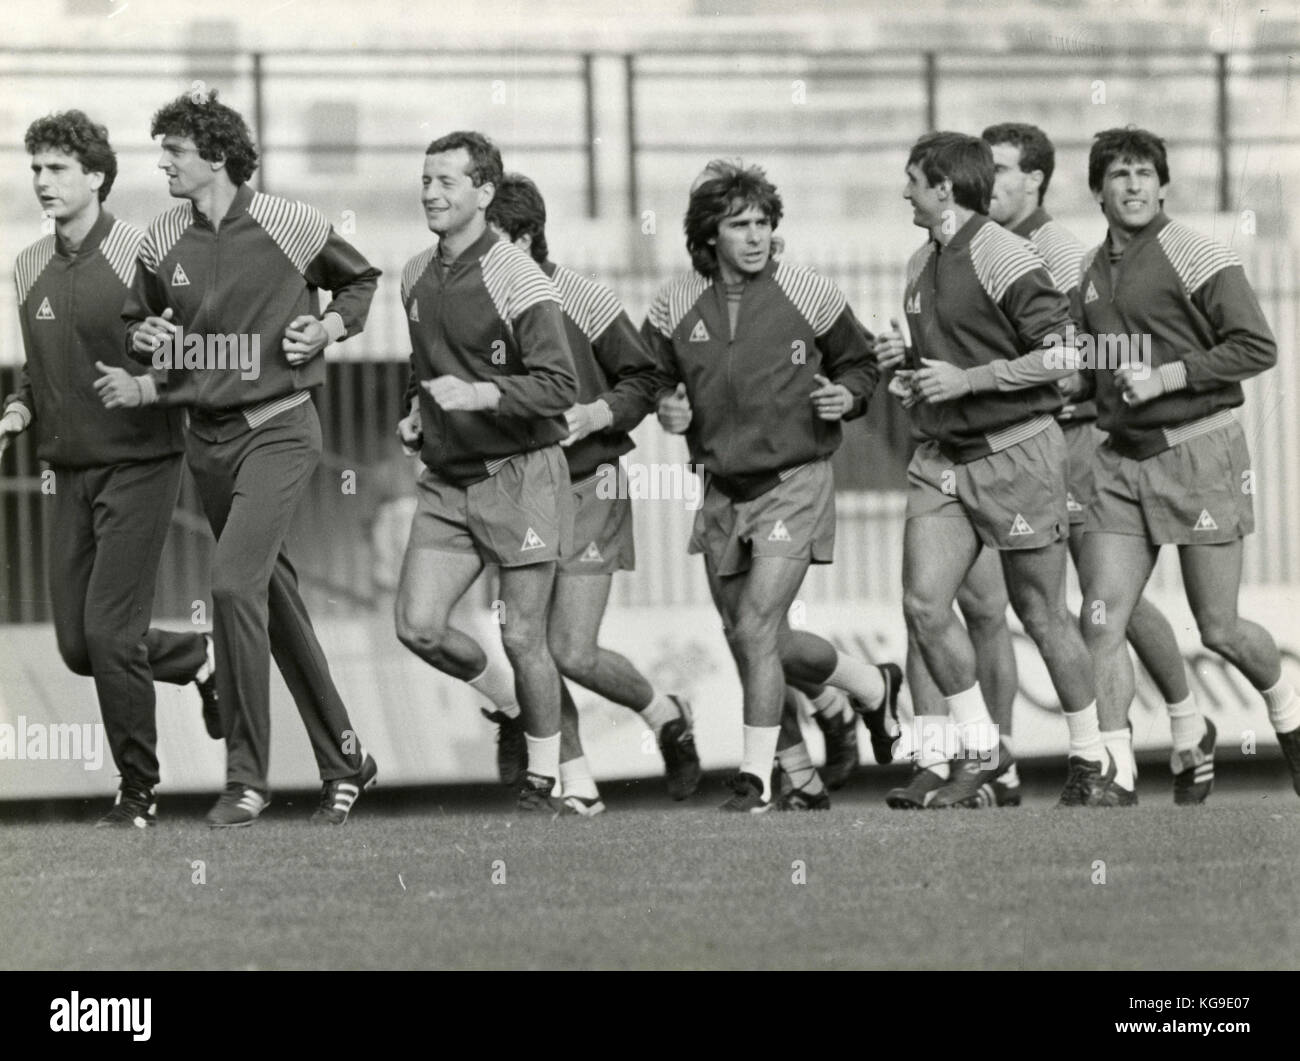 Training of the Italian national football team 1985 - Stock Image